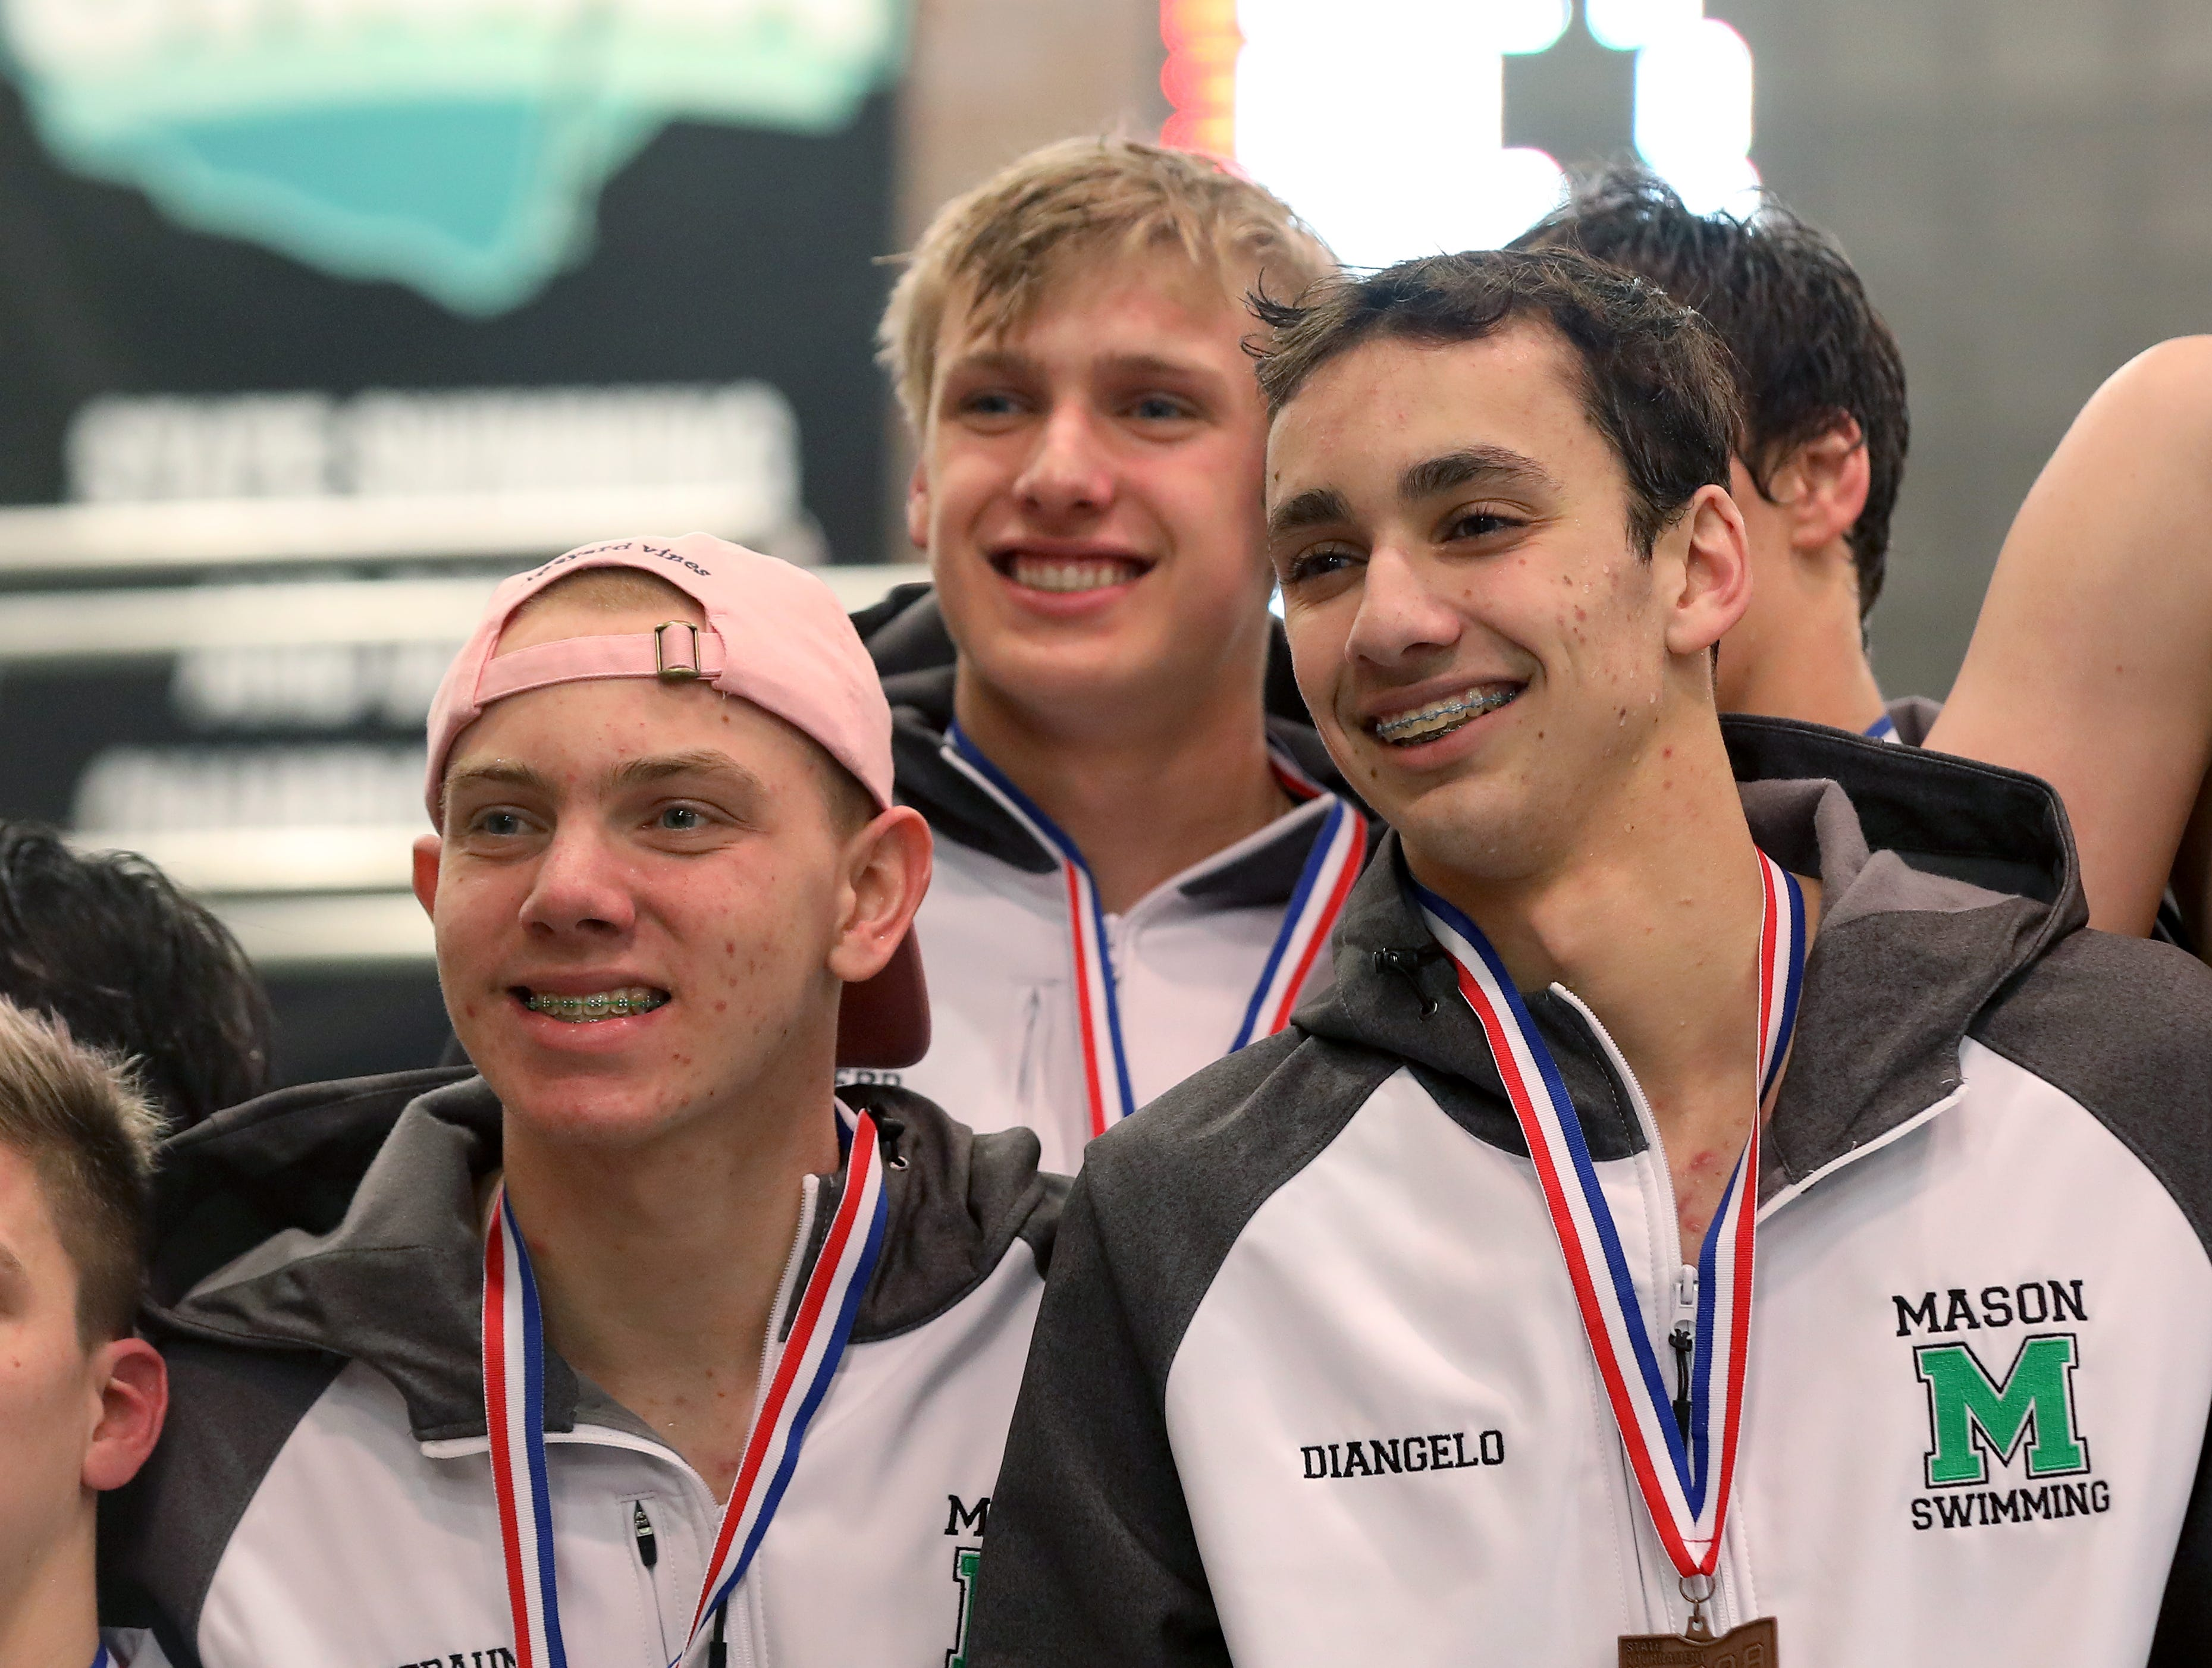 Mason boys 200 medley relay team finished fourth at the OHSAA state swimming and diving championships in Canton Ohio, Friday, Feb. 23, 2019.